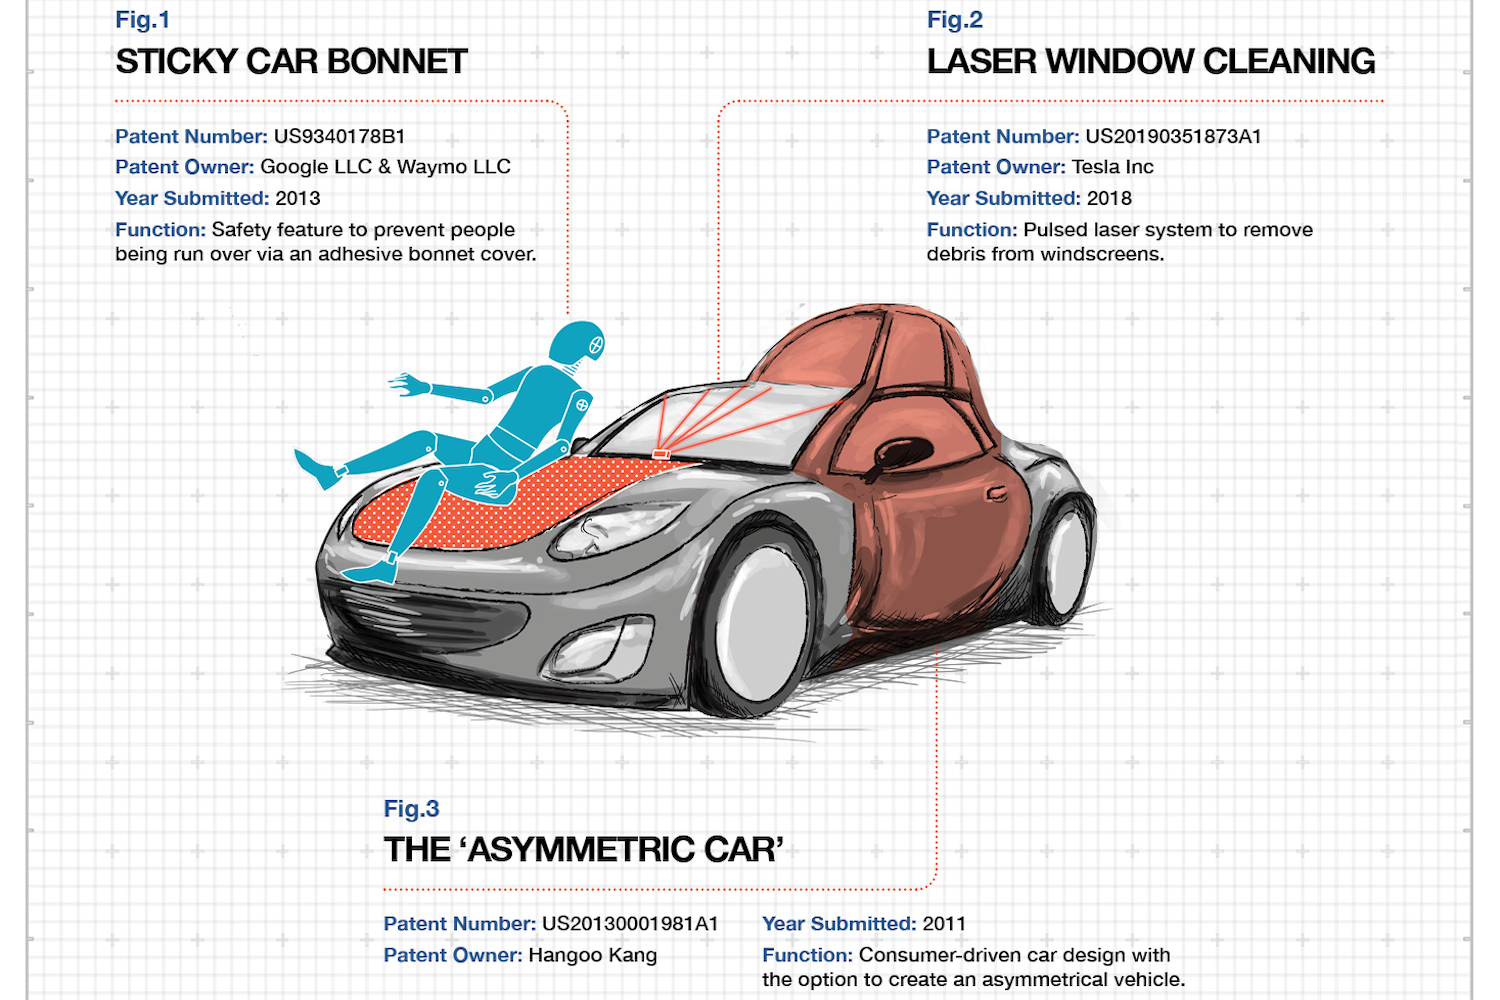 Sticky bonnets and roof-mounted turbines: the weirdest car patents